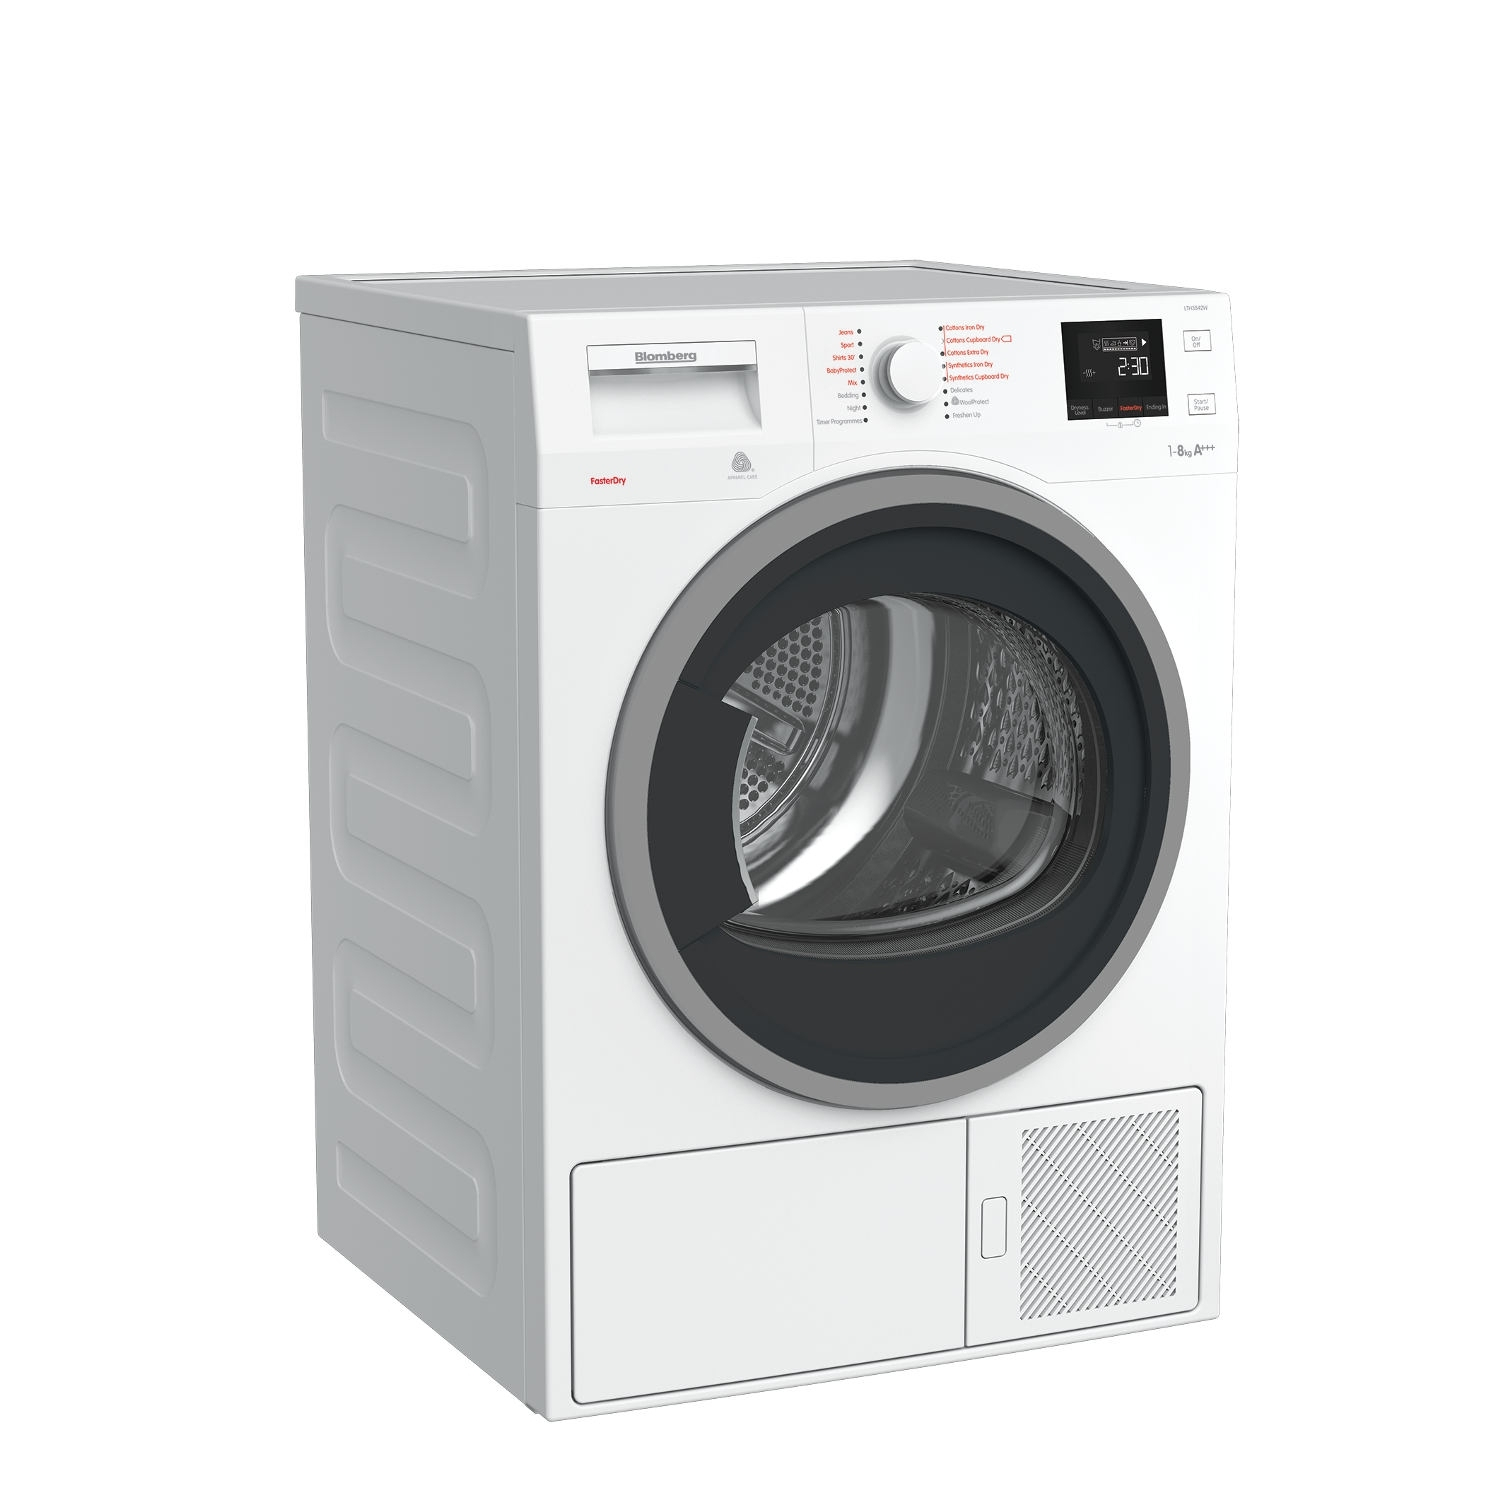 Blomberg LTH3842W 8kg Heat Pump Tumble Dryer - White - 4